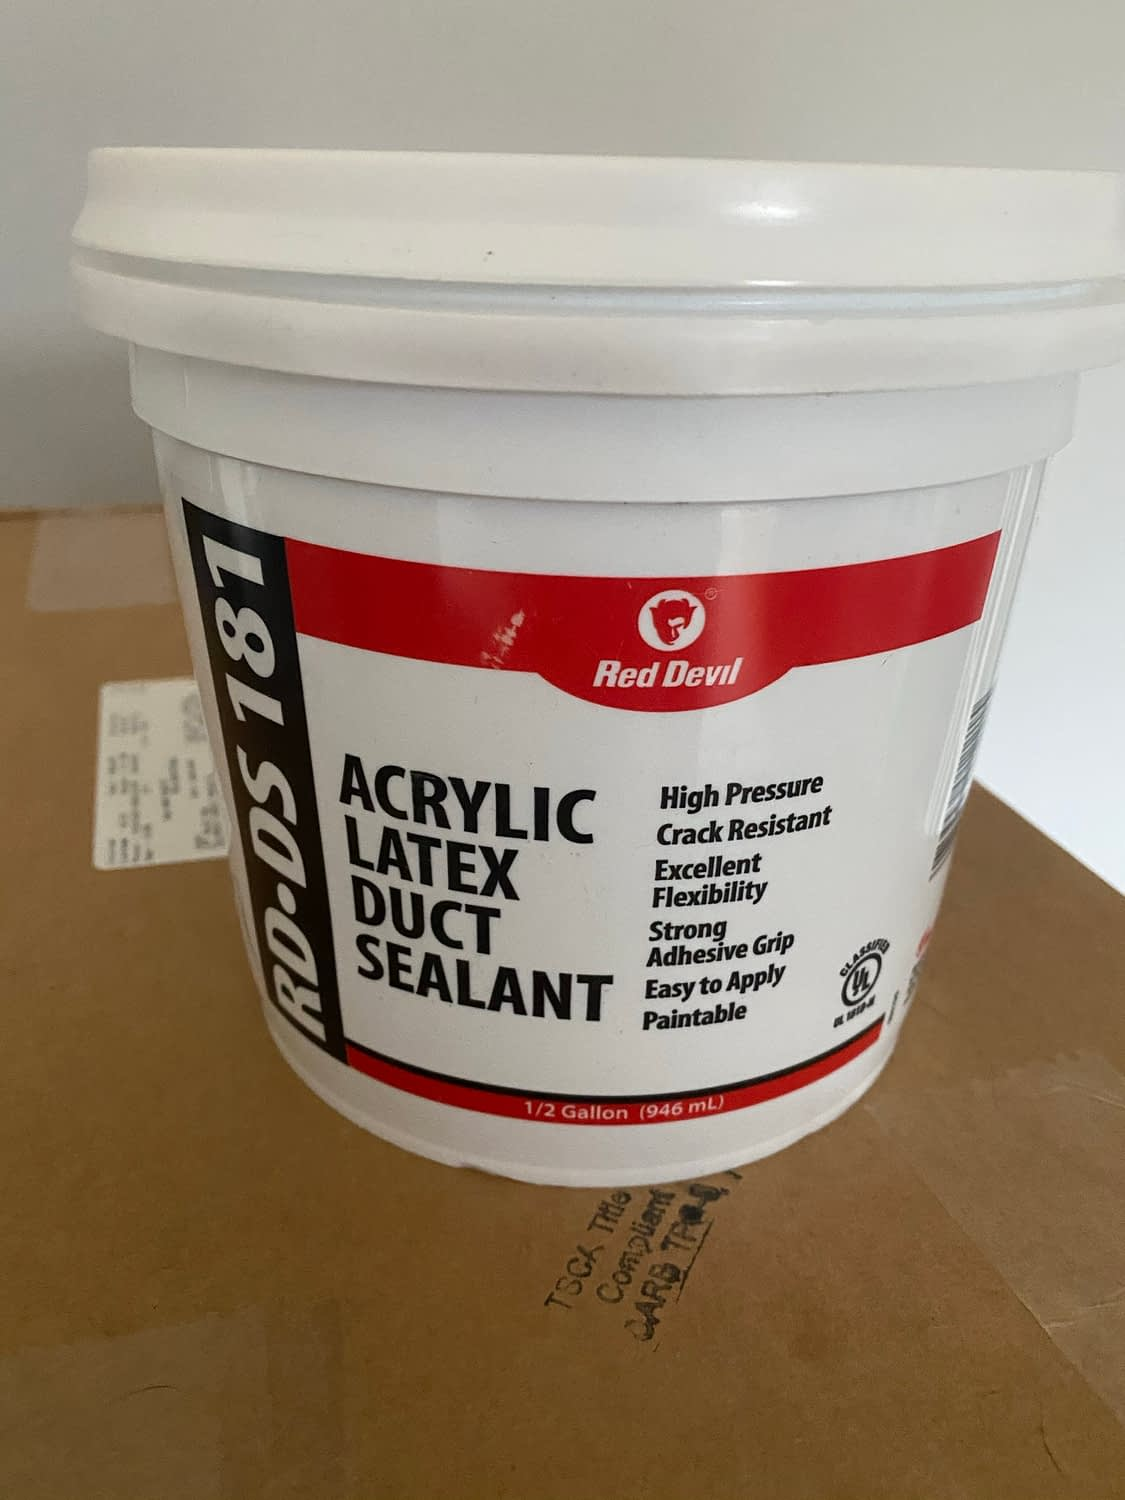 Red Devil Acrylic Latex Duct Sealant